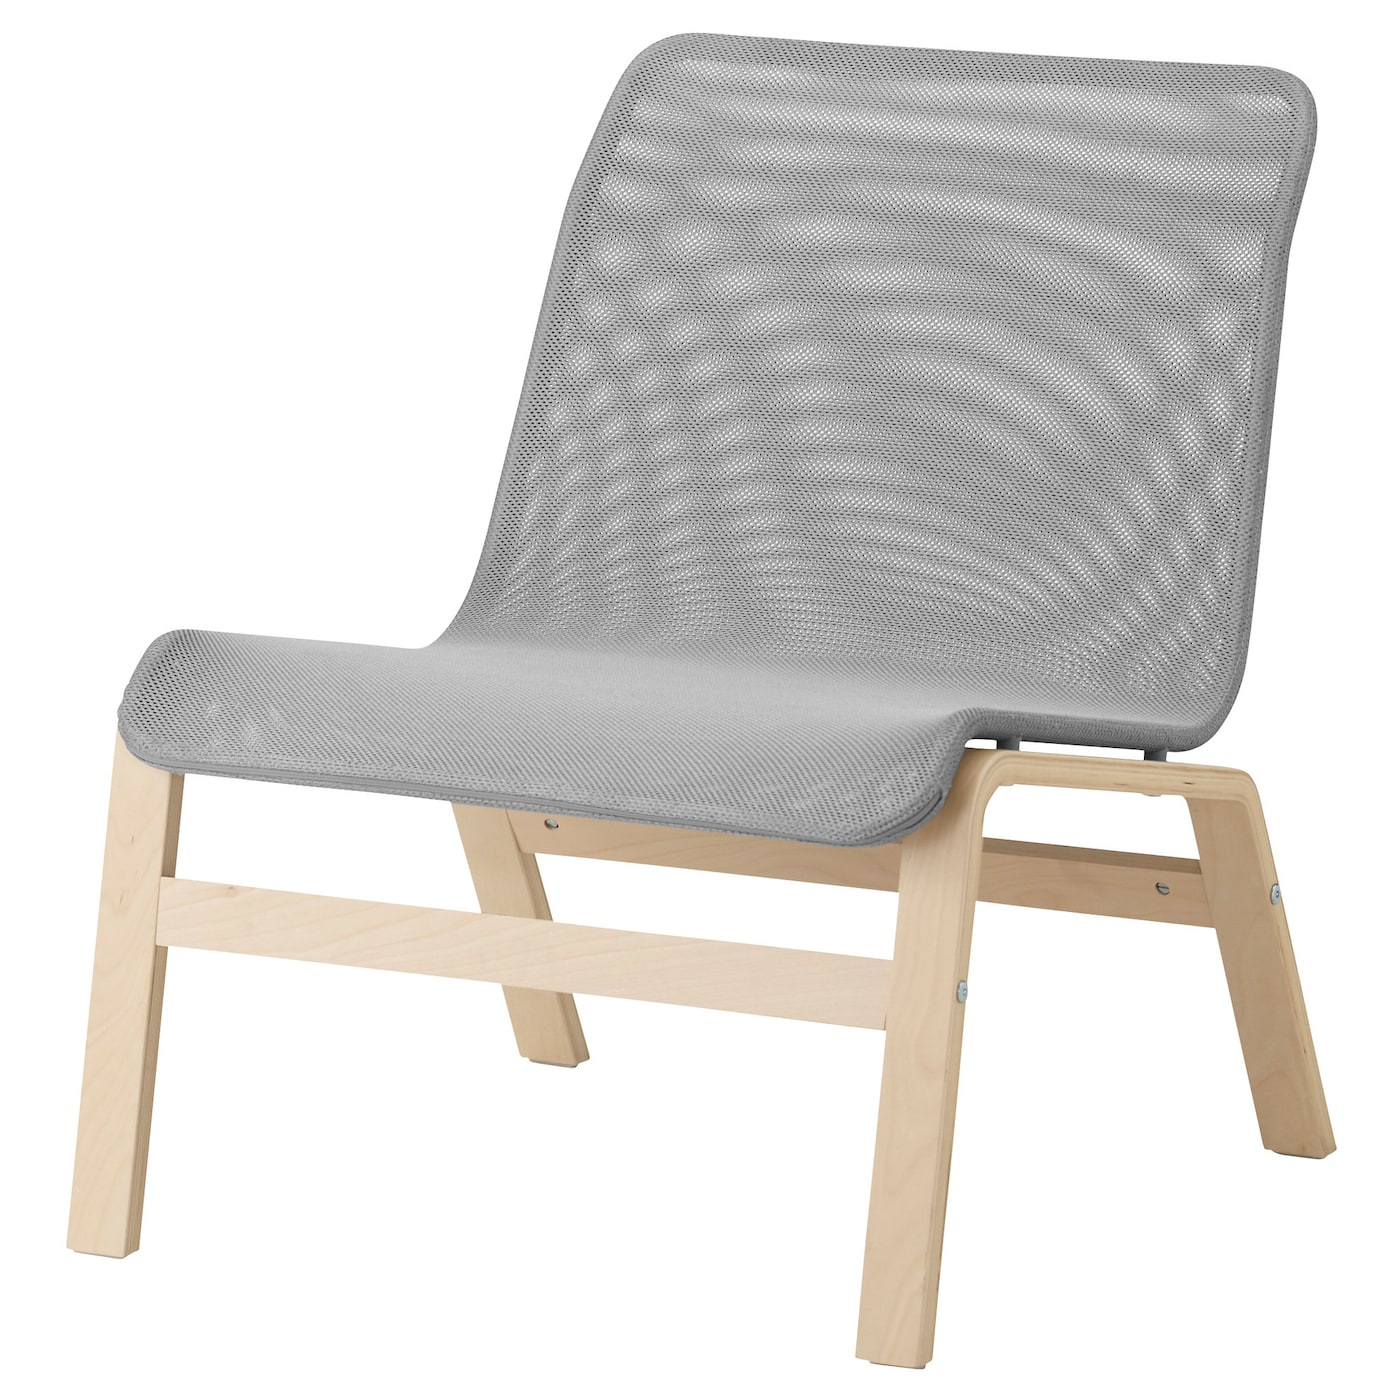 NOLMYRA Easy chair Birch veneer grey IKEA